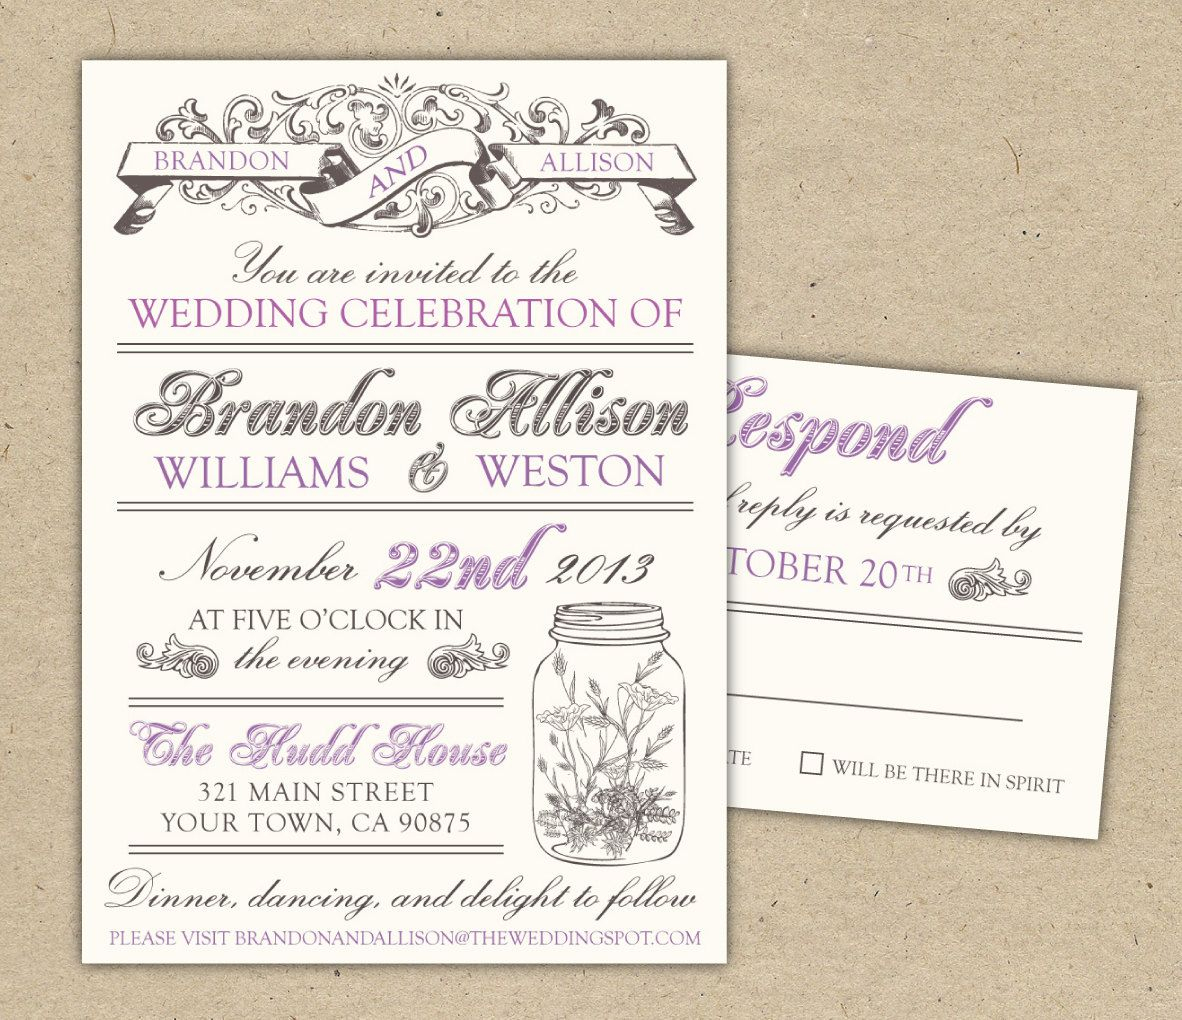 Free Templates For Invitations   Free Printable Vintage Wedding - Free Printable Wedding Invitation Templates For Word